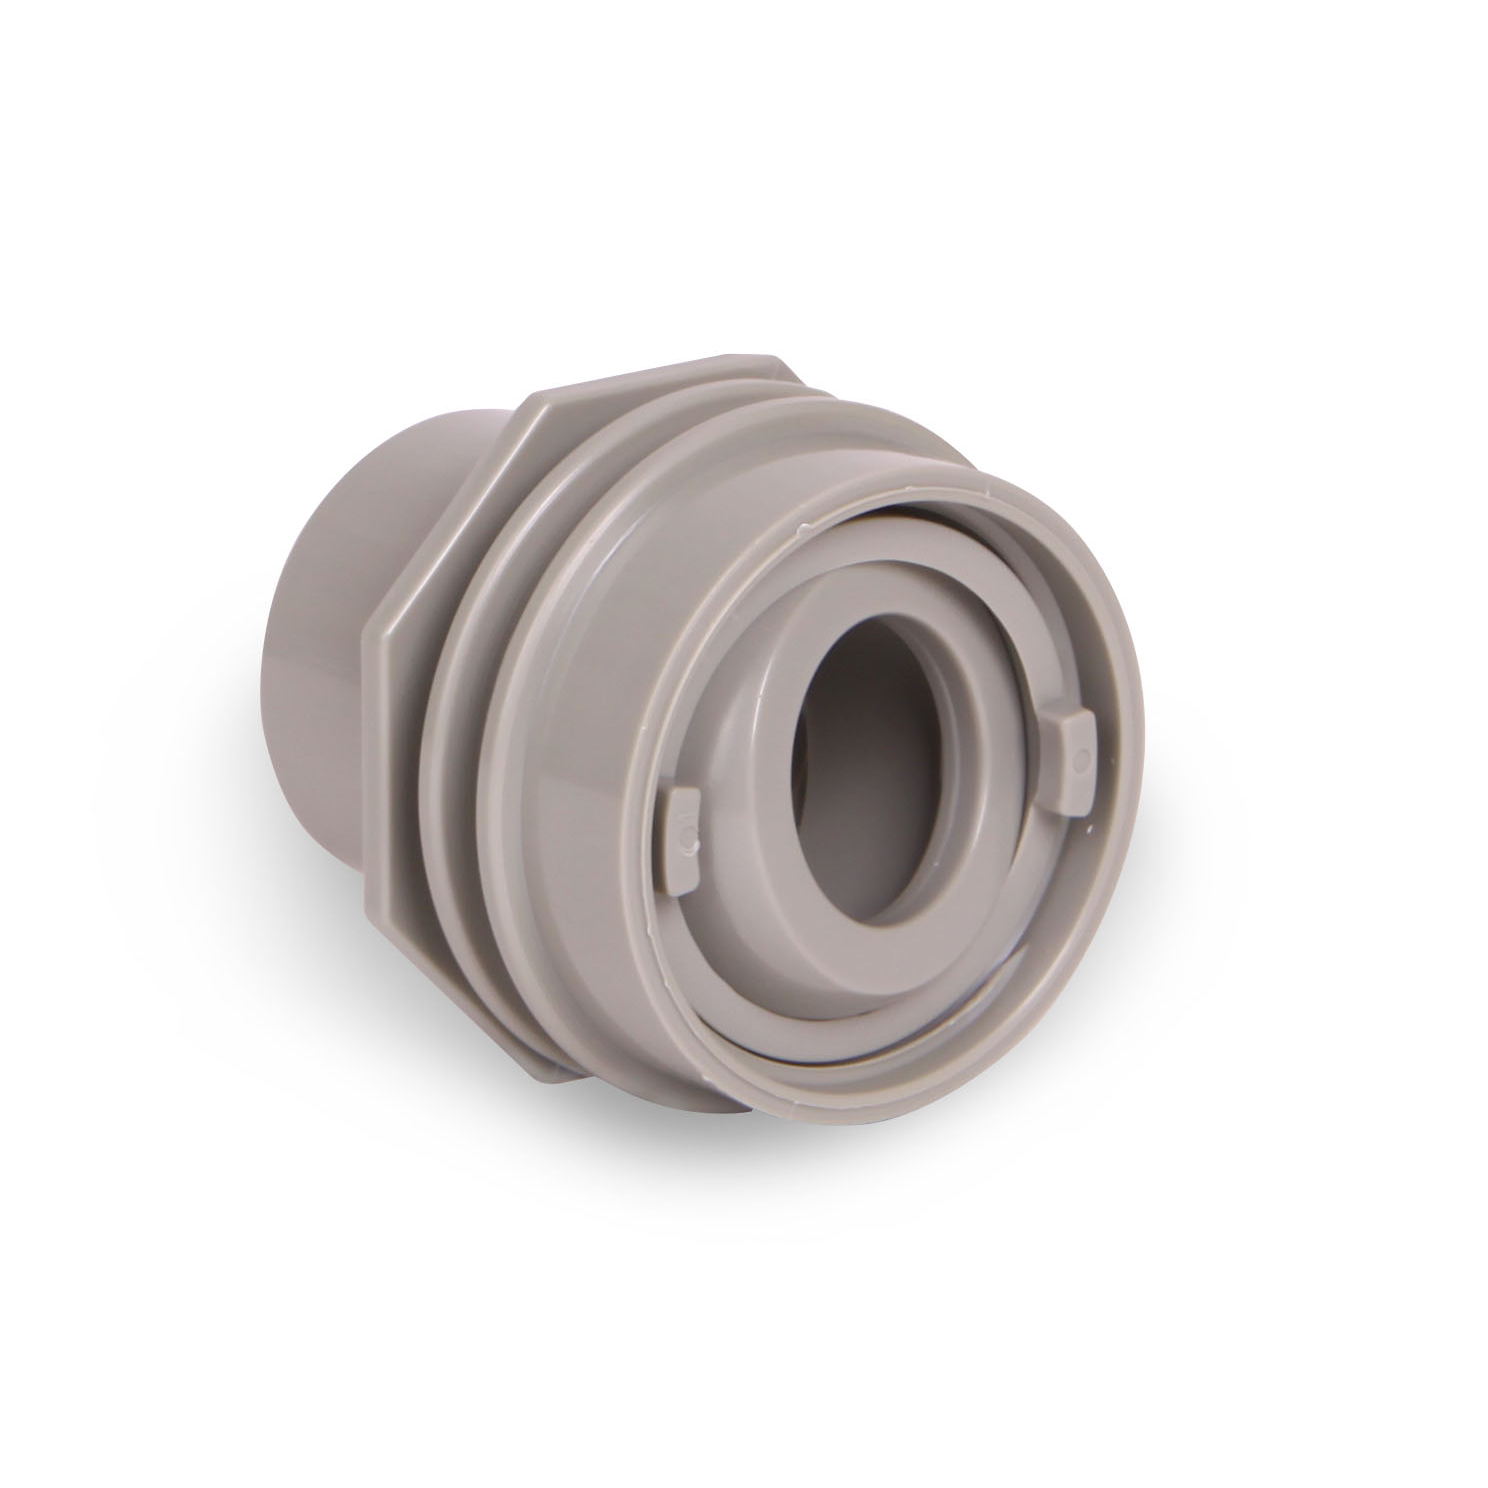 Flush Mount Return Fittings Light Gray